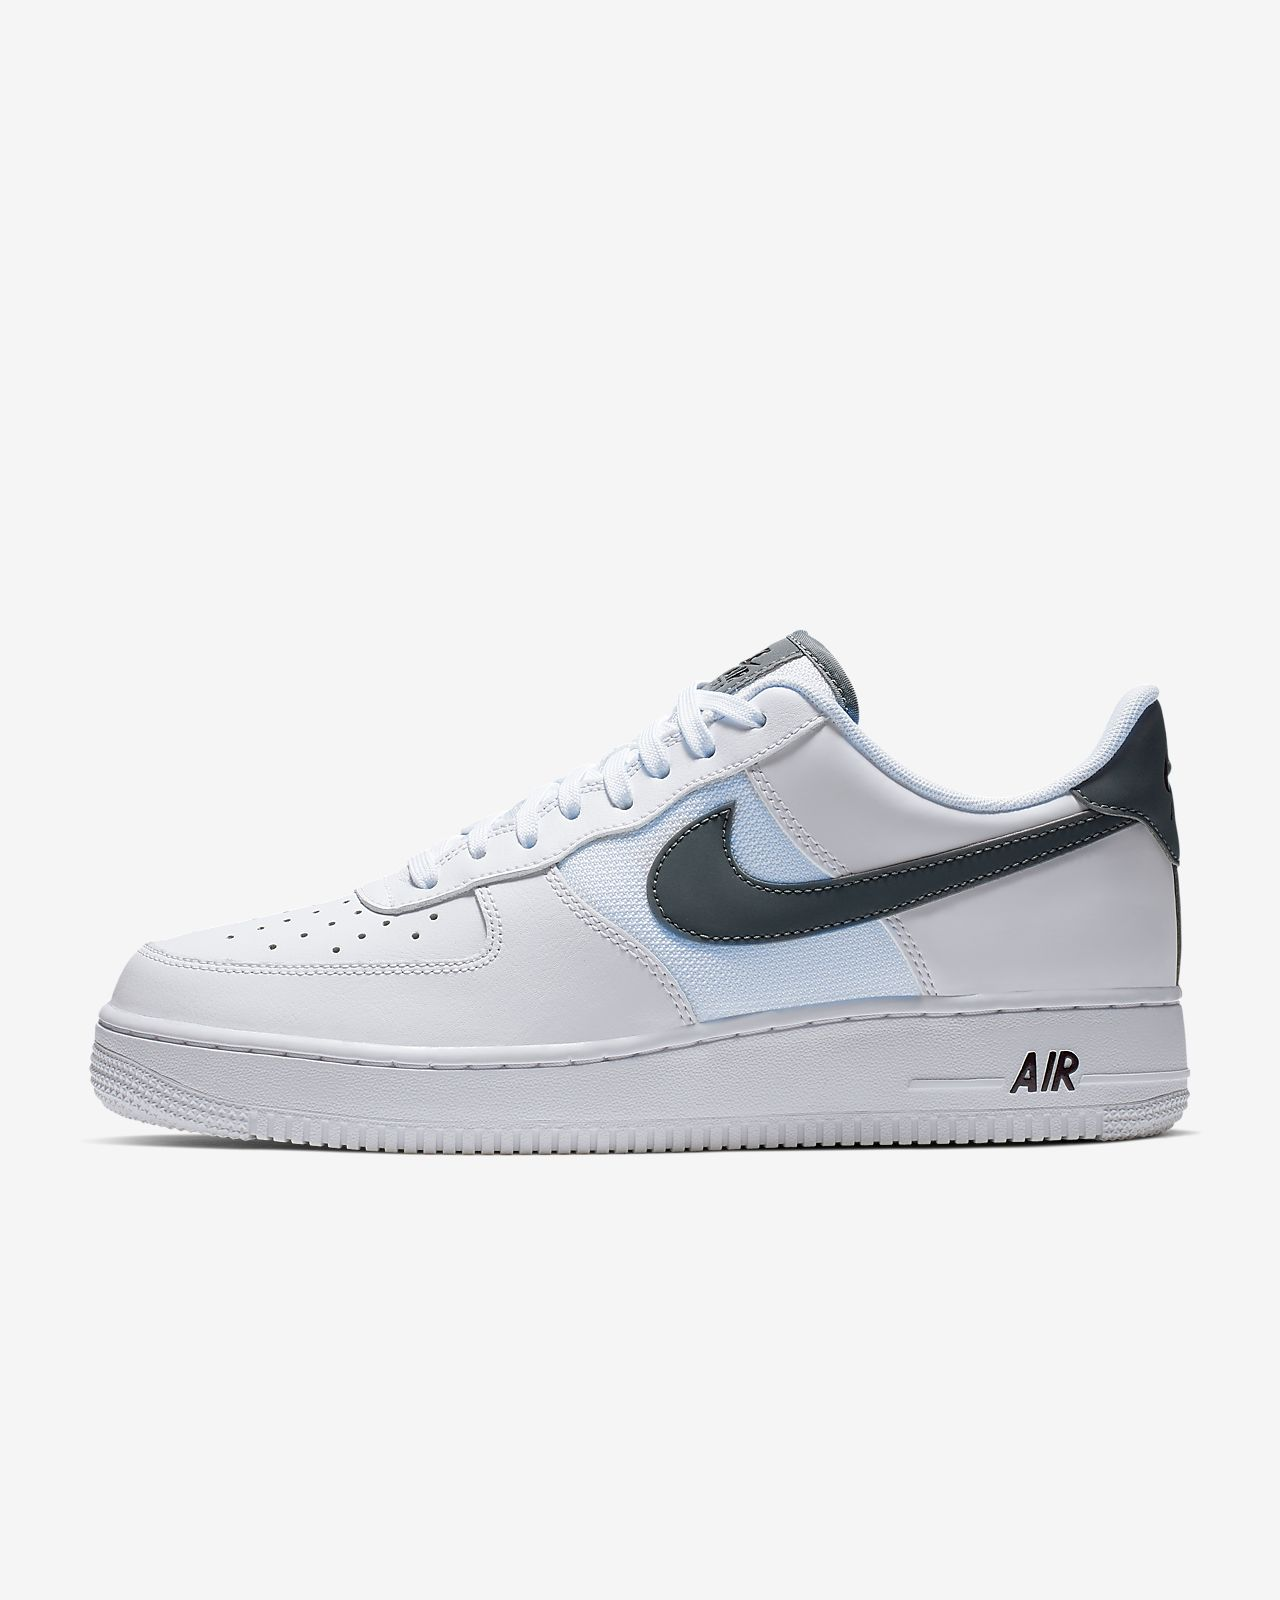 Force 1 Chaussure Pour Nike Air Lv8 '07 HommeBe dCBorxe